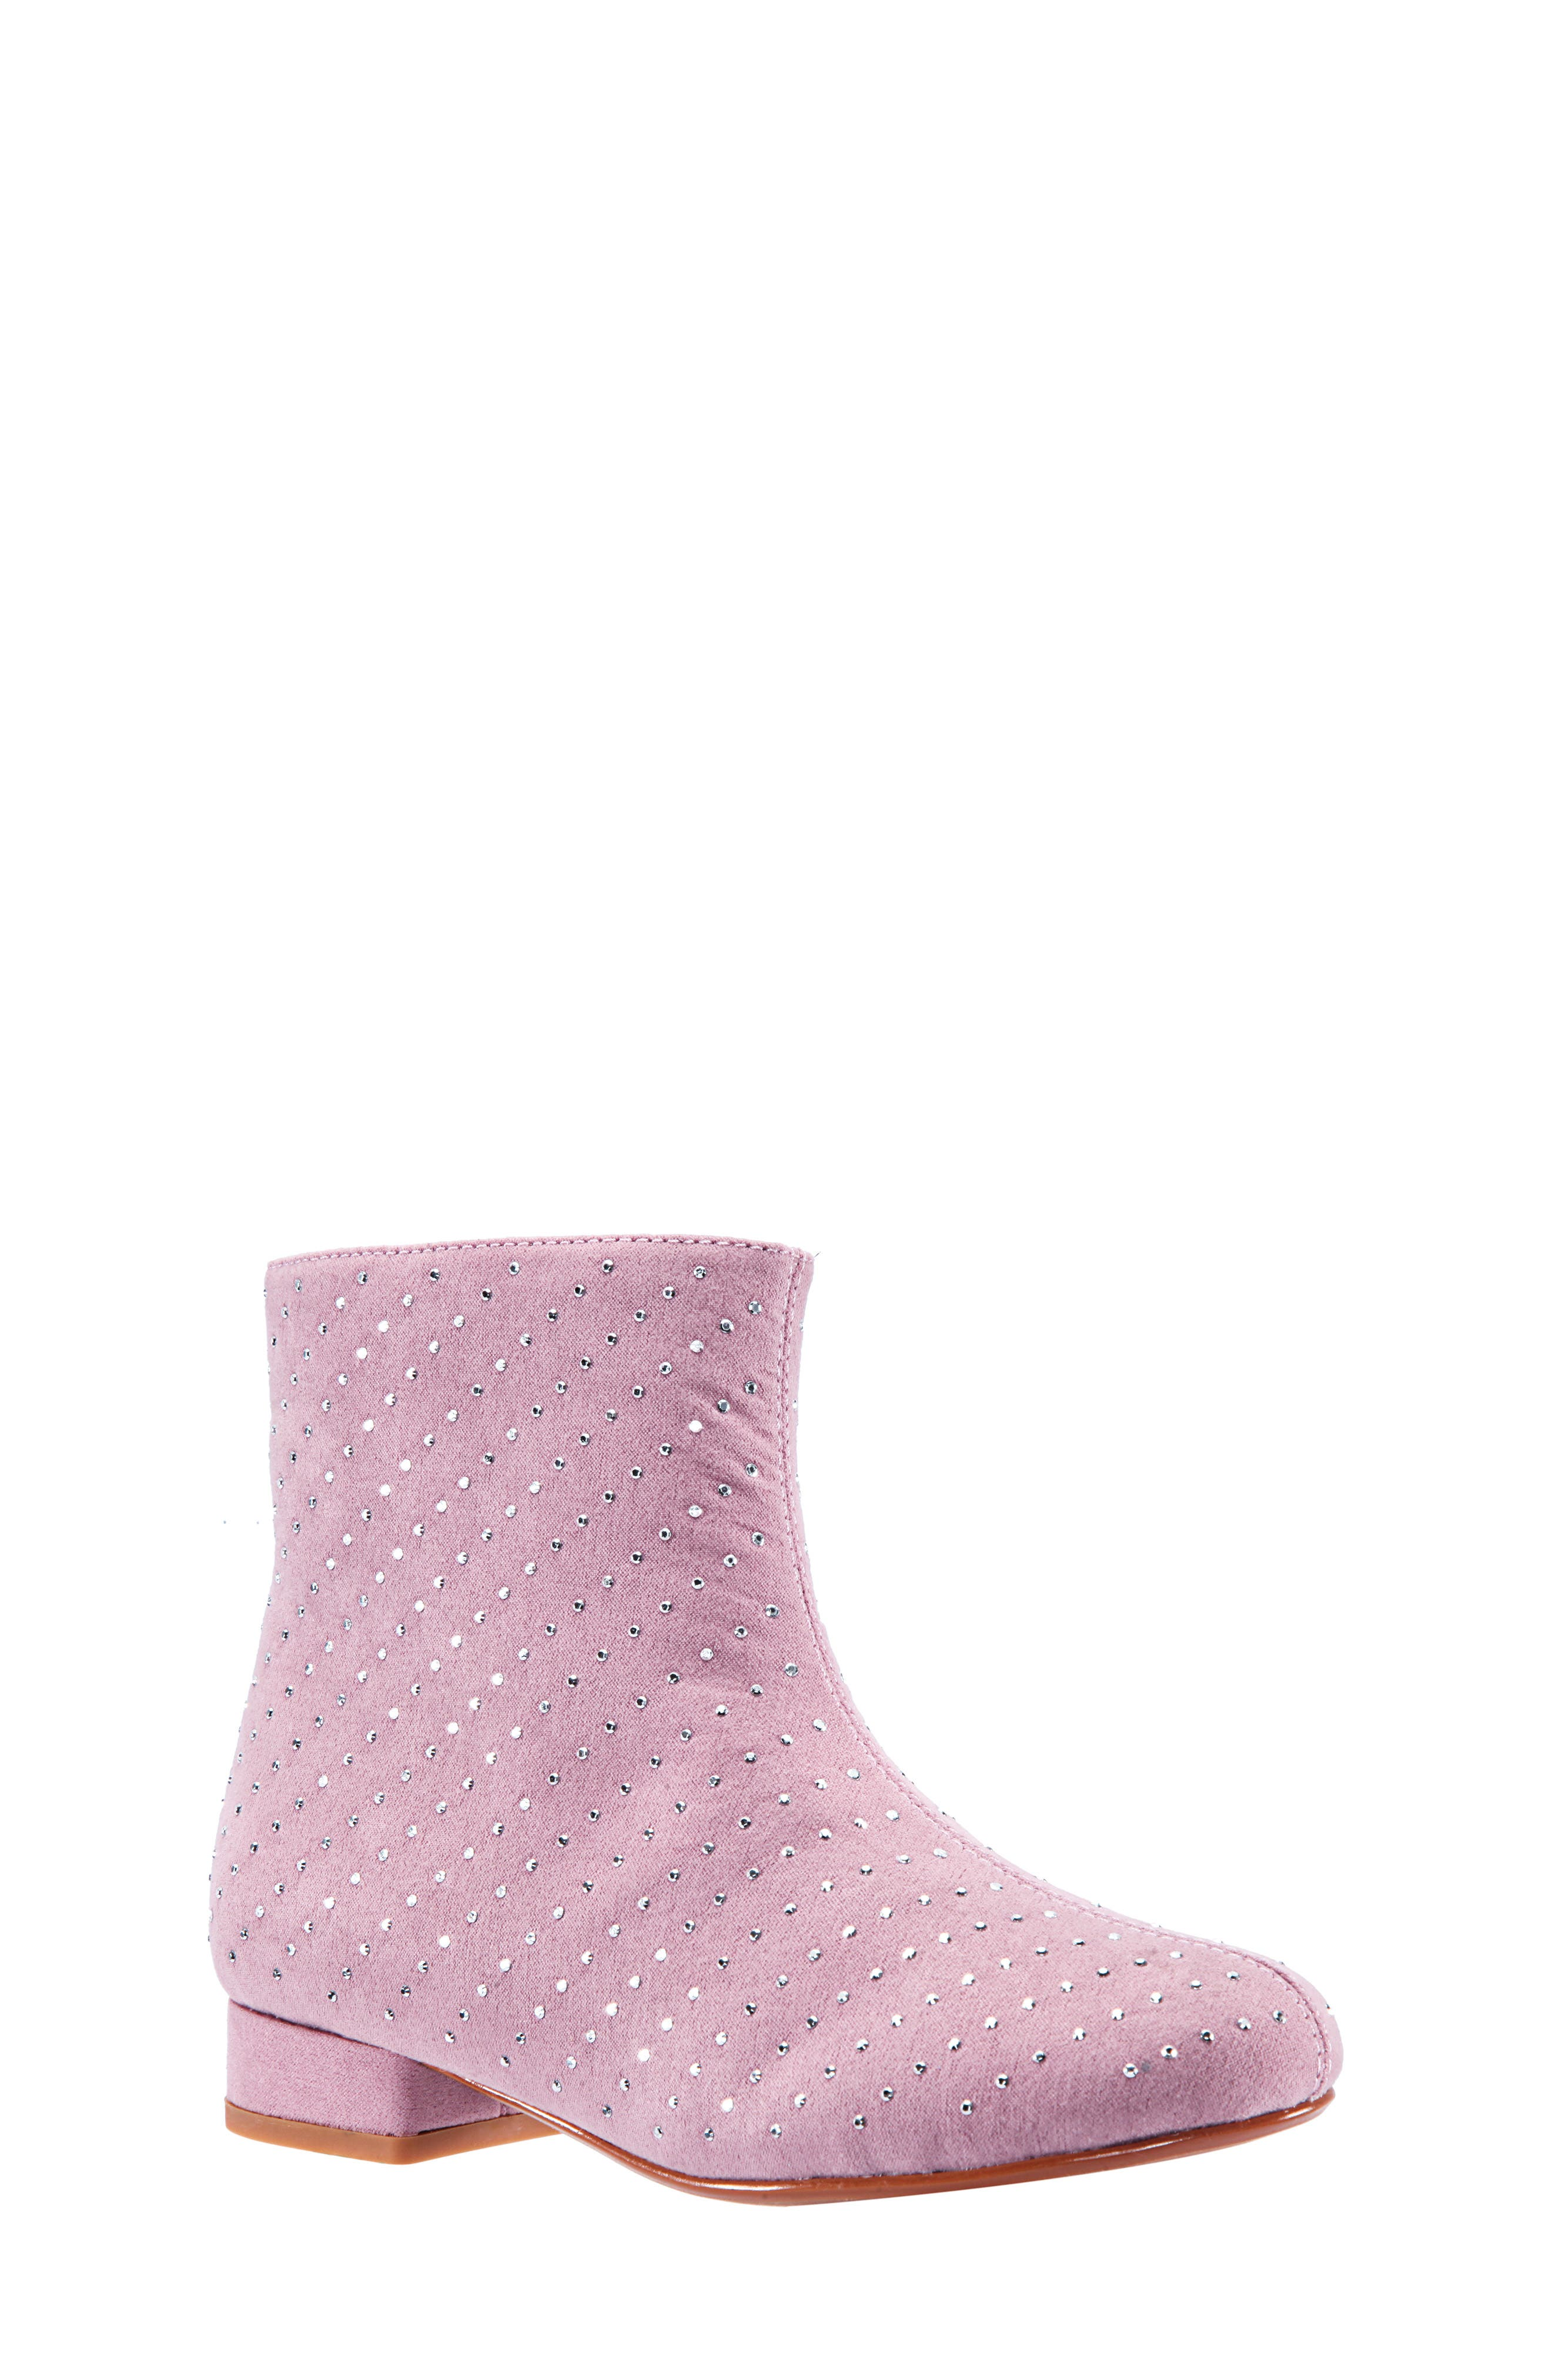 Peaches Studded Bootie,                             Main thumbnail 1, color,                             PINK MICRO SUEDE